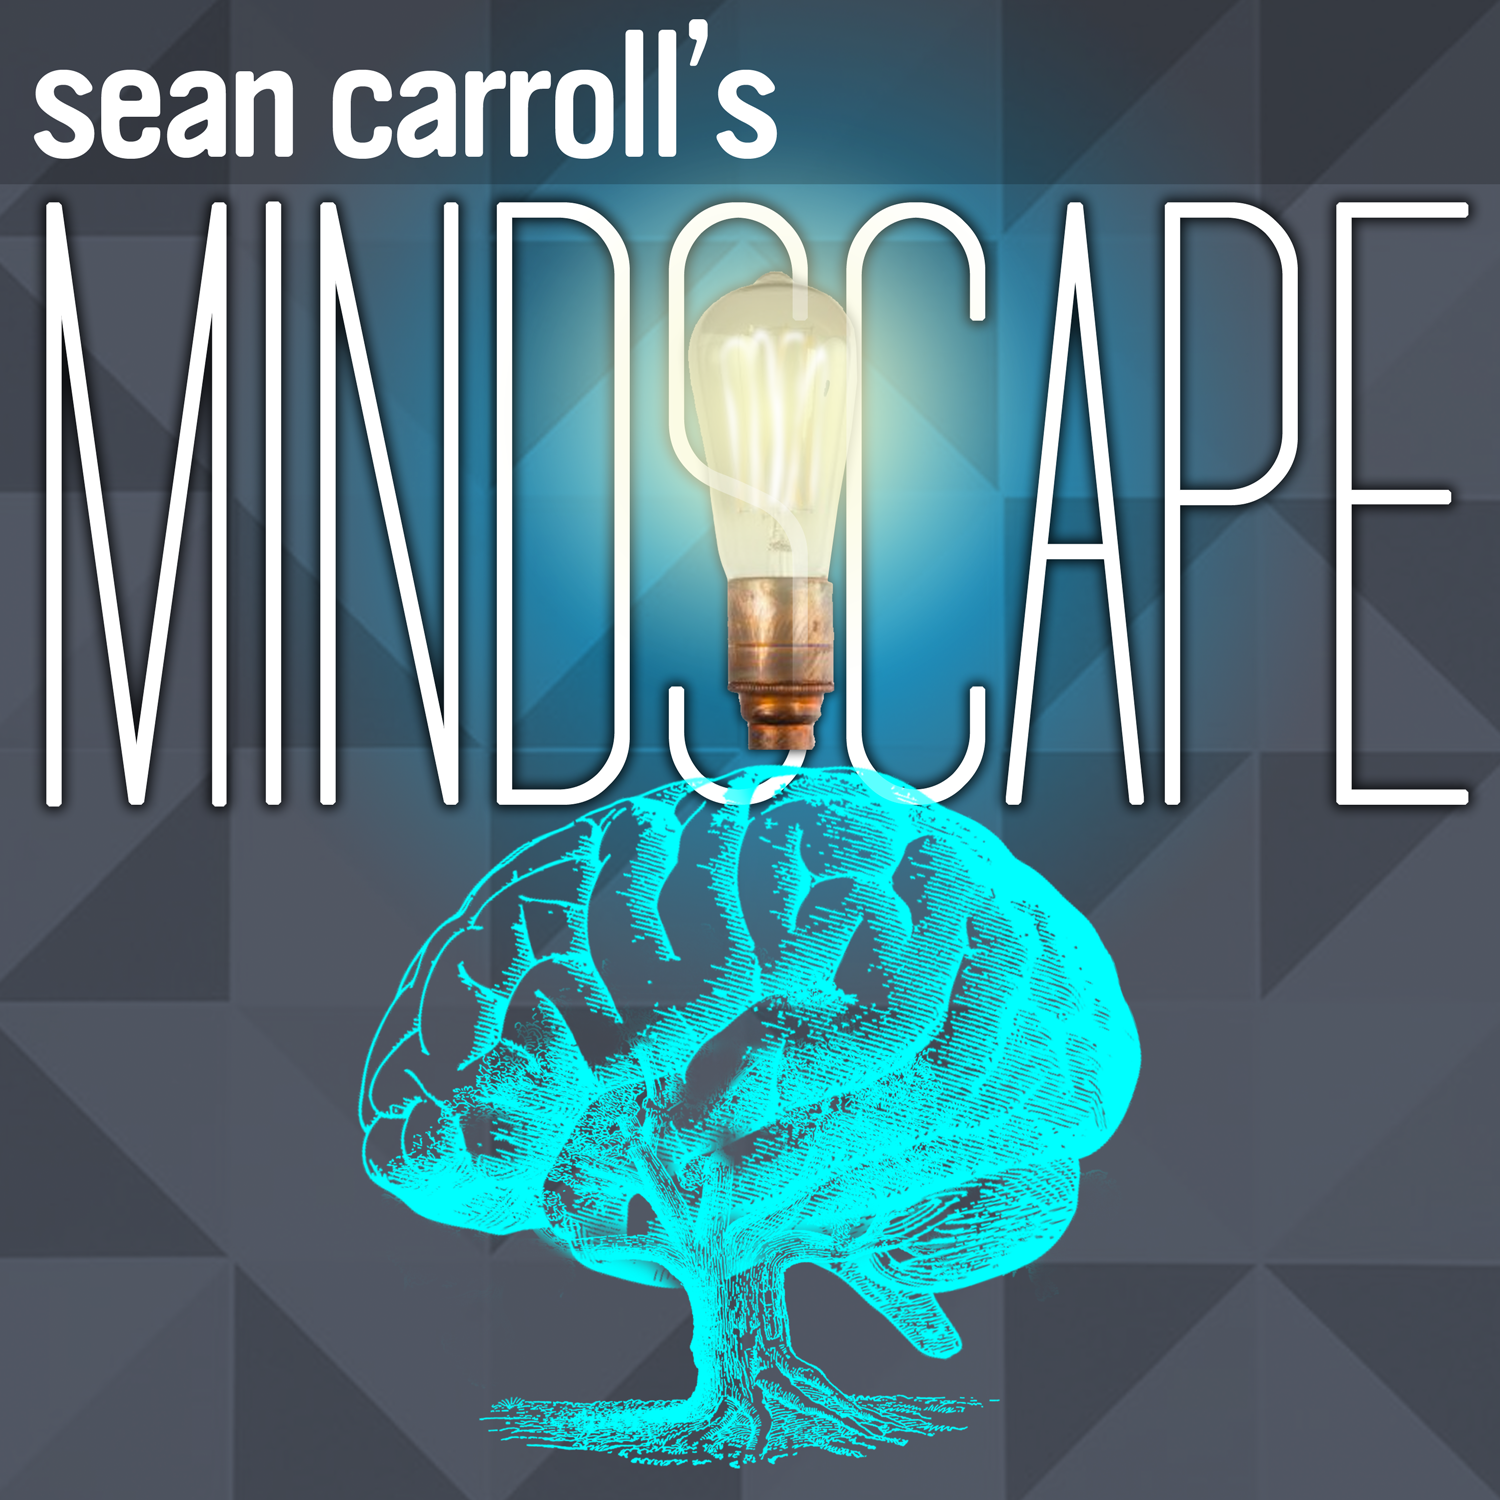 Welcome to the Mindscape Podcast! – Sean Carroll